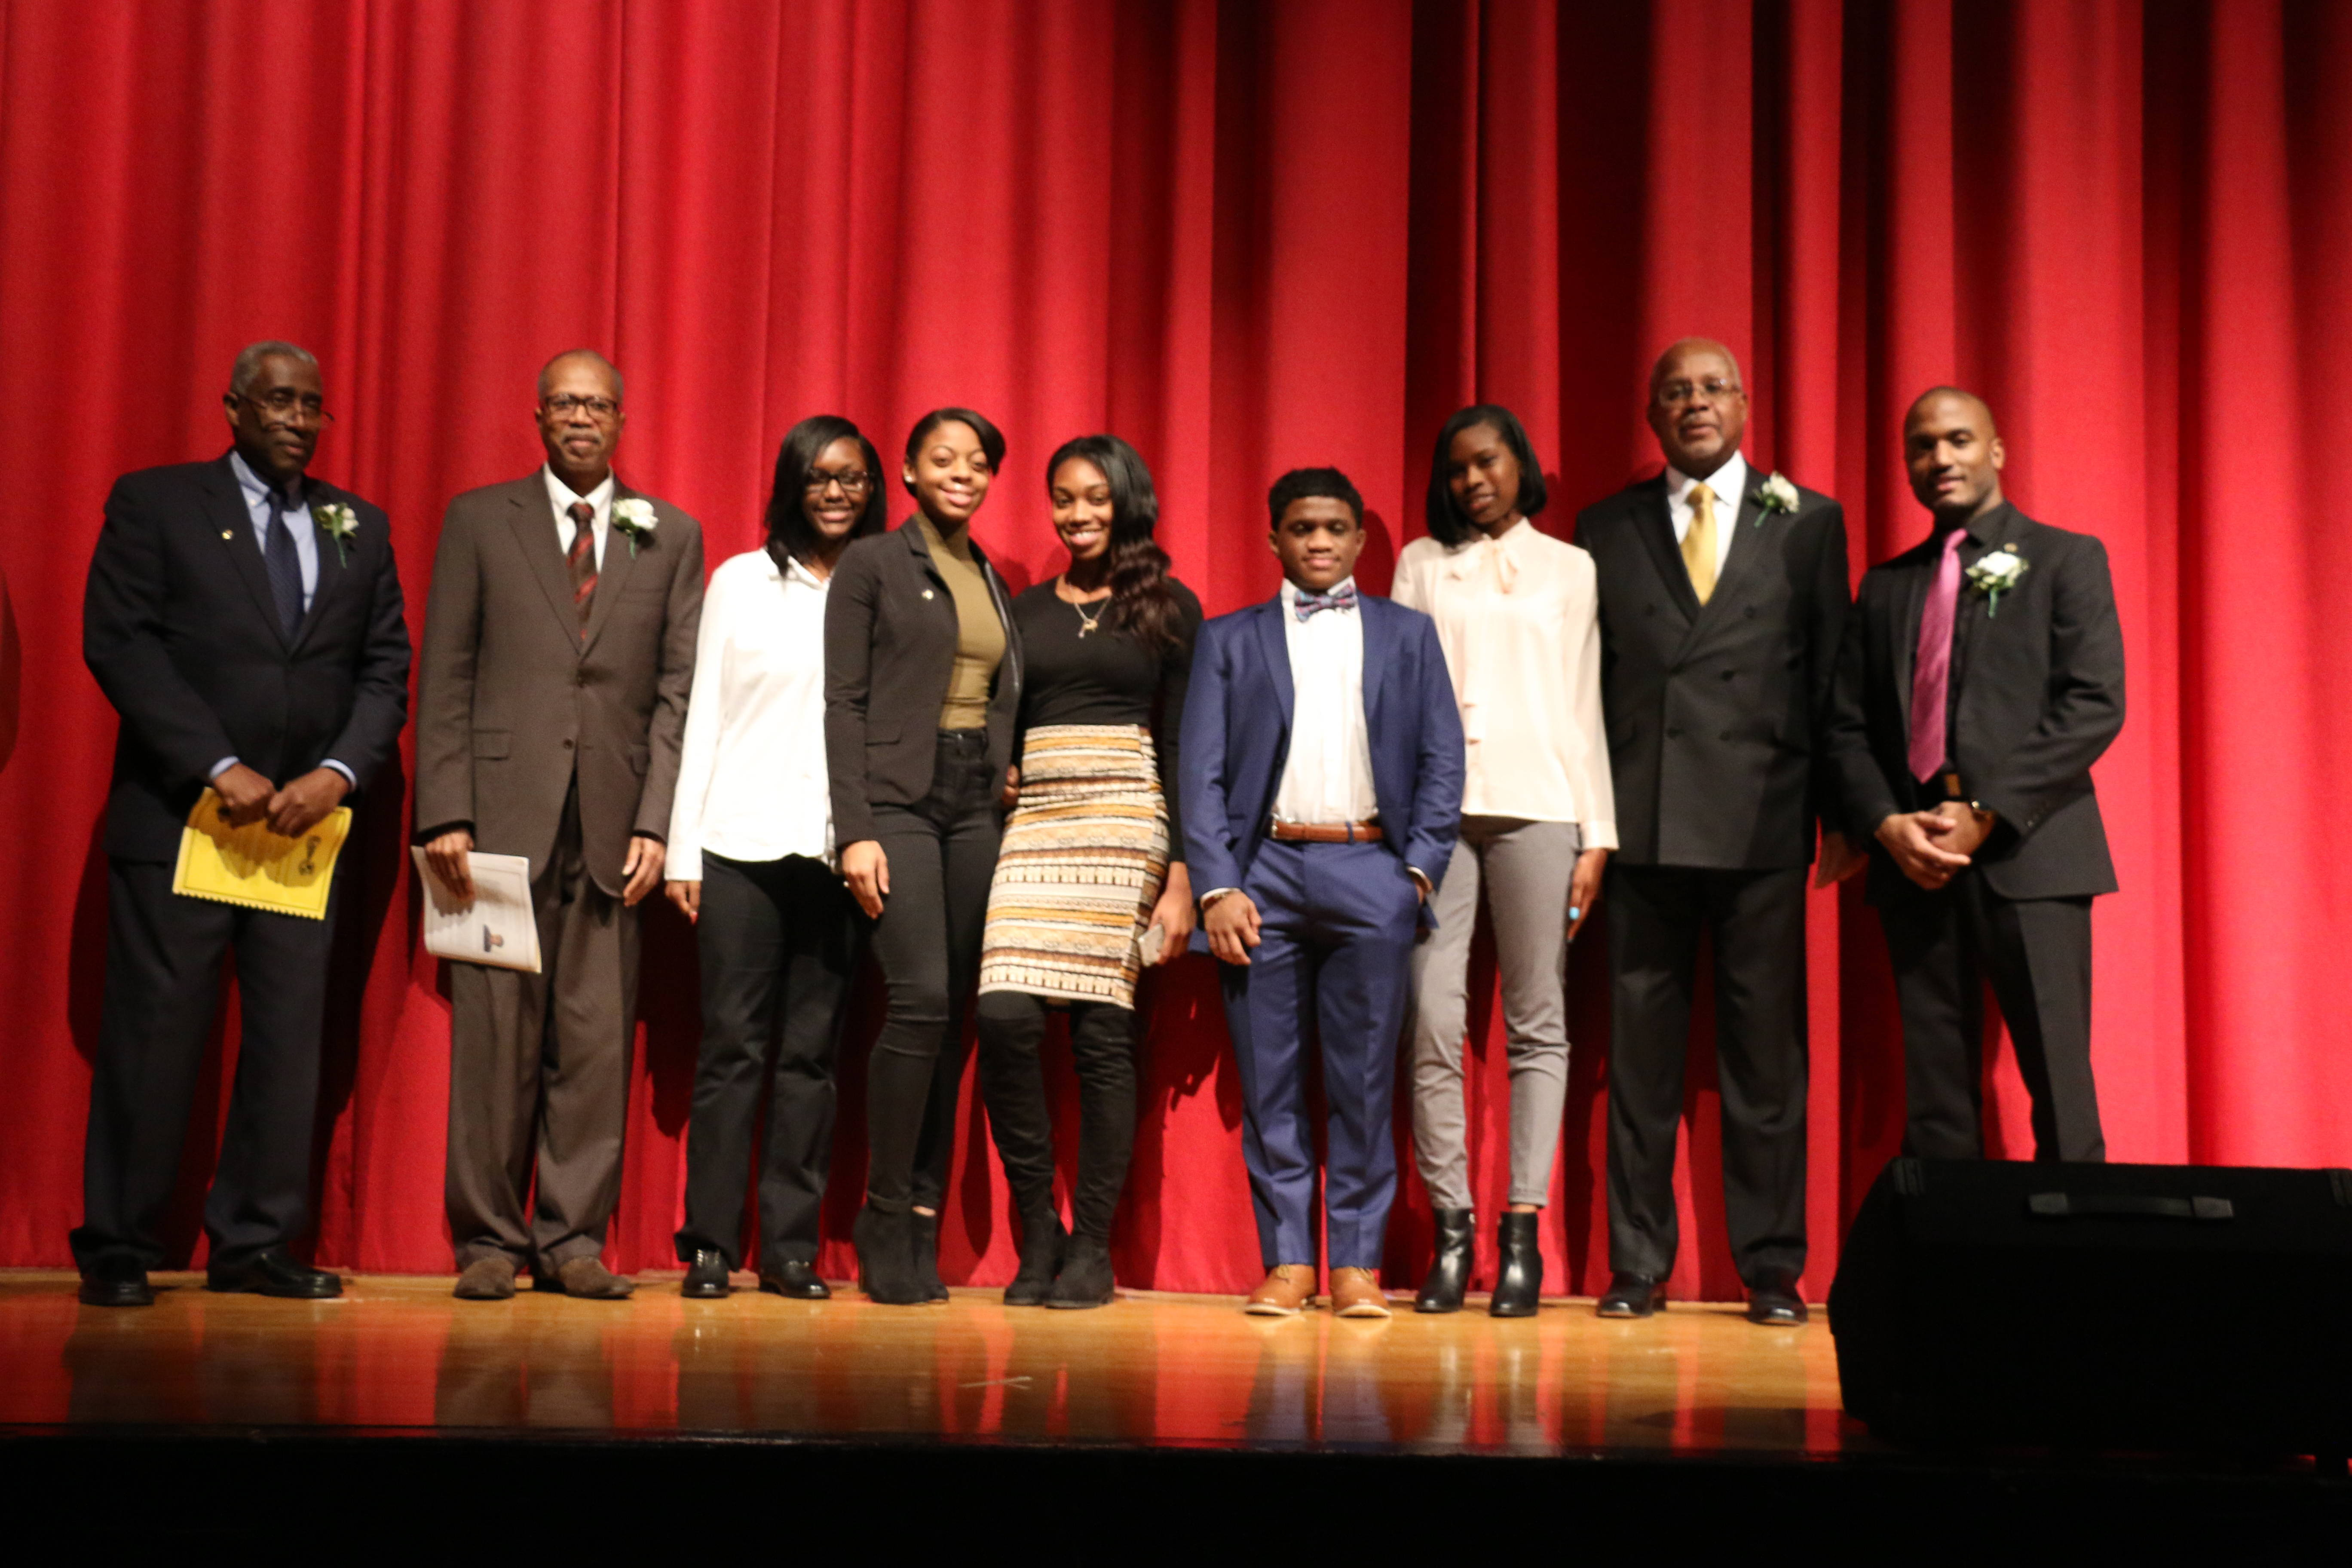 Martin Luther King, Jr. Day at Plainfield High School